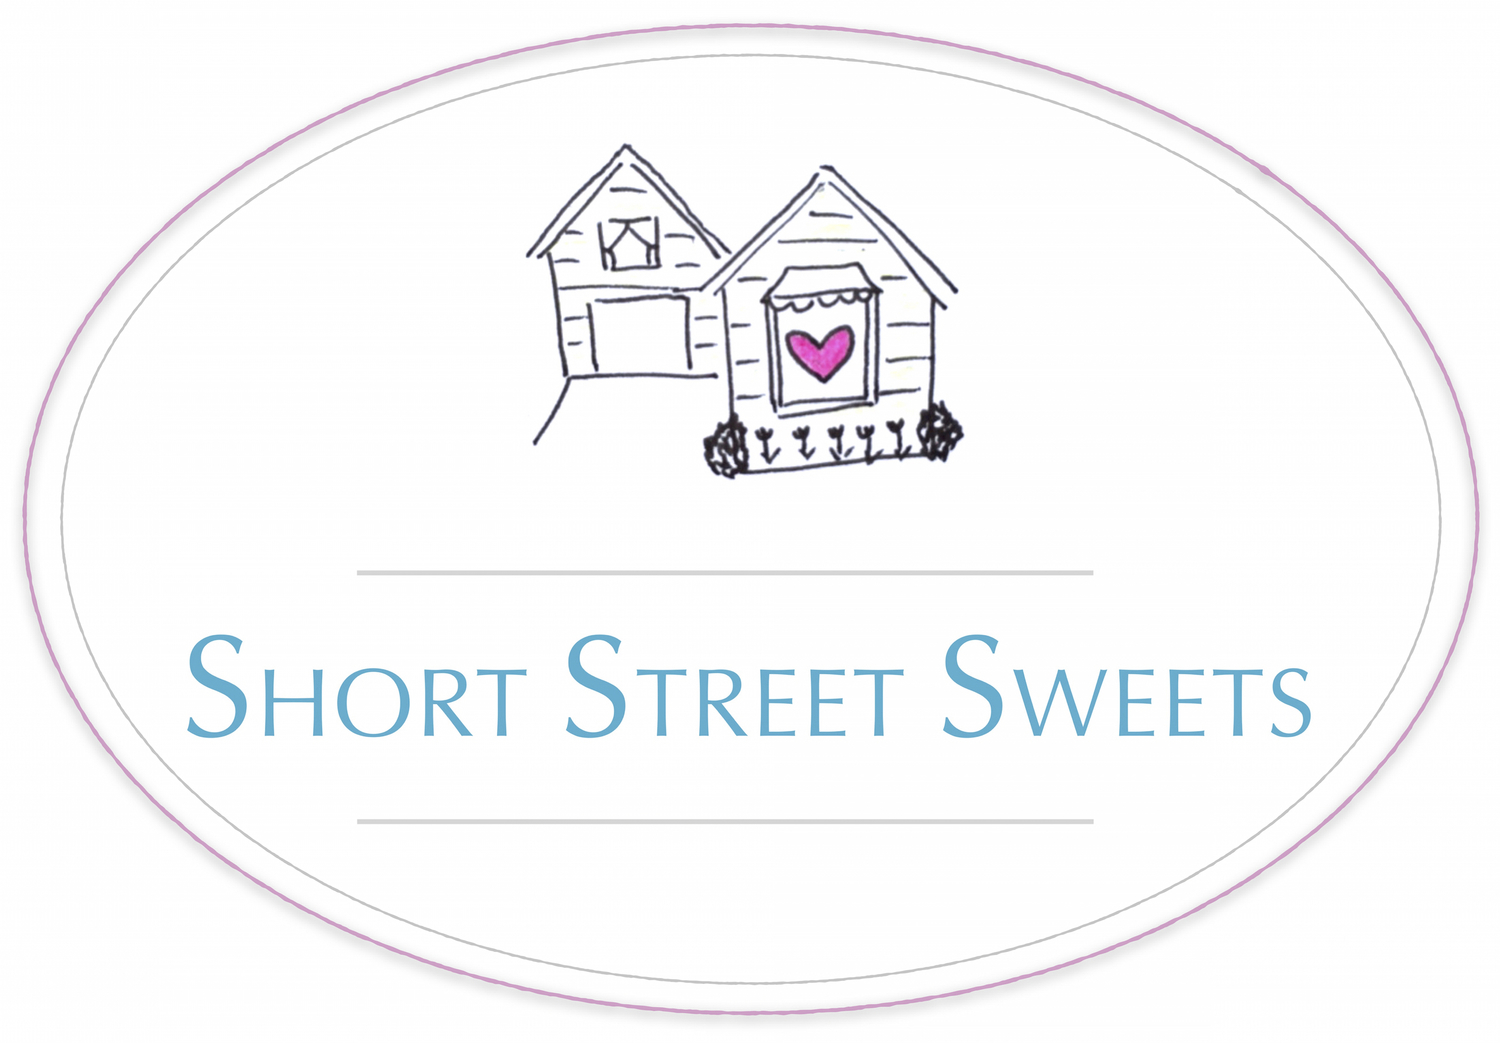 Short Street Sweets